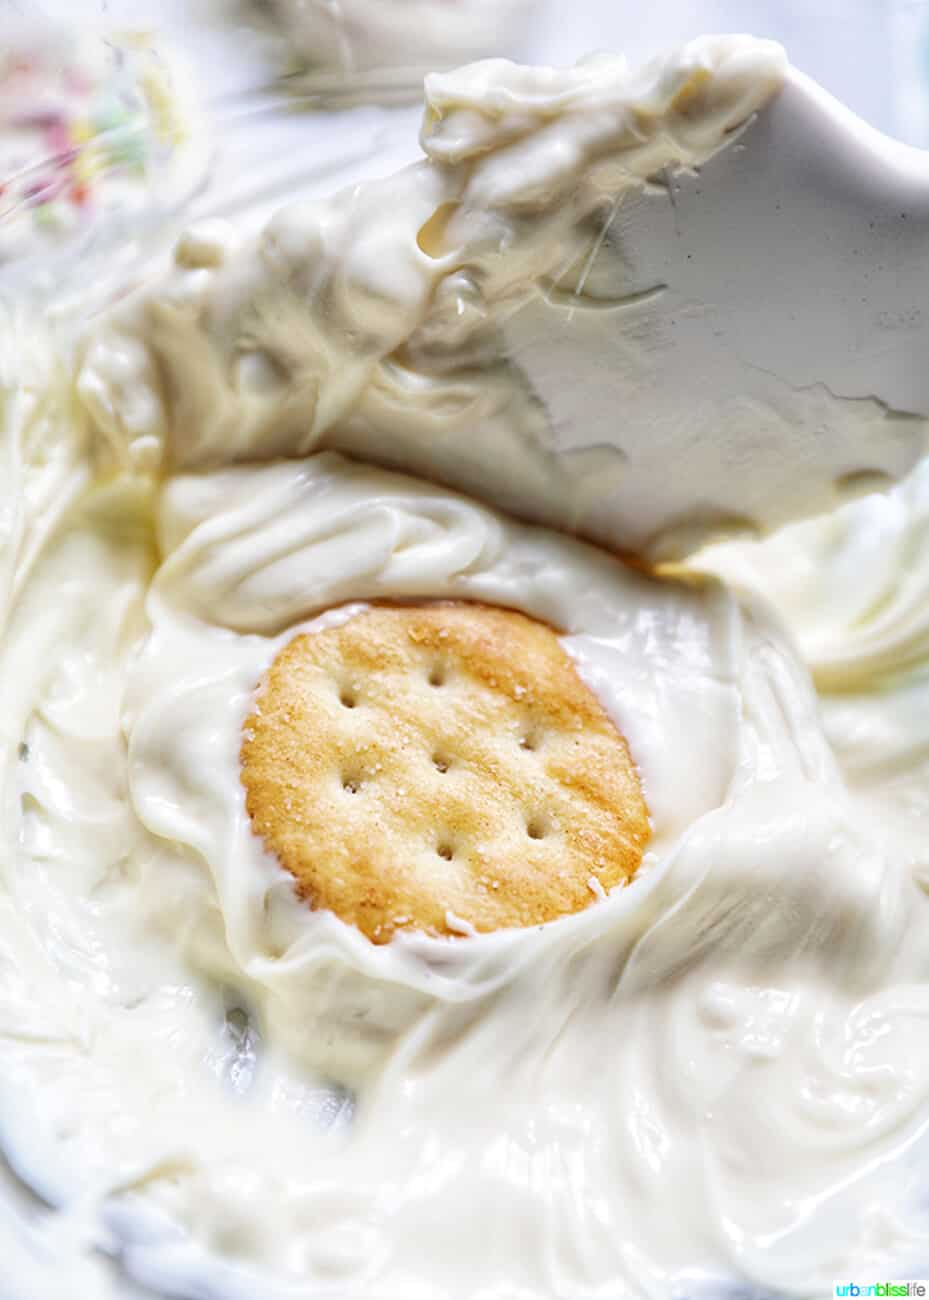 dipping Ritz cracker cookies into white chocolate